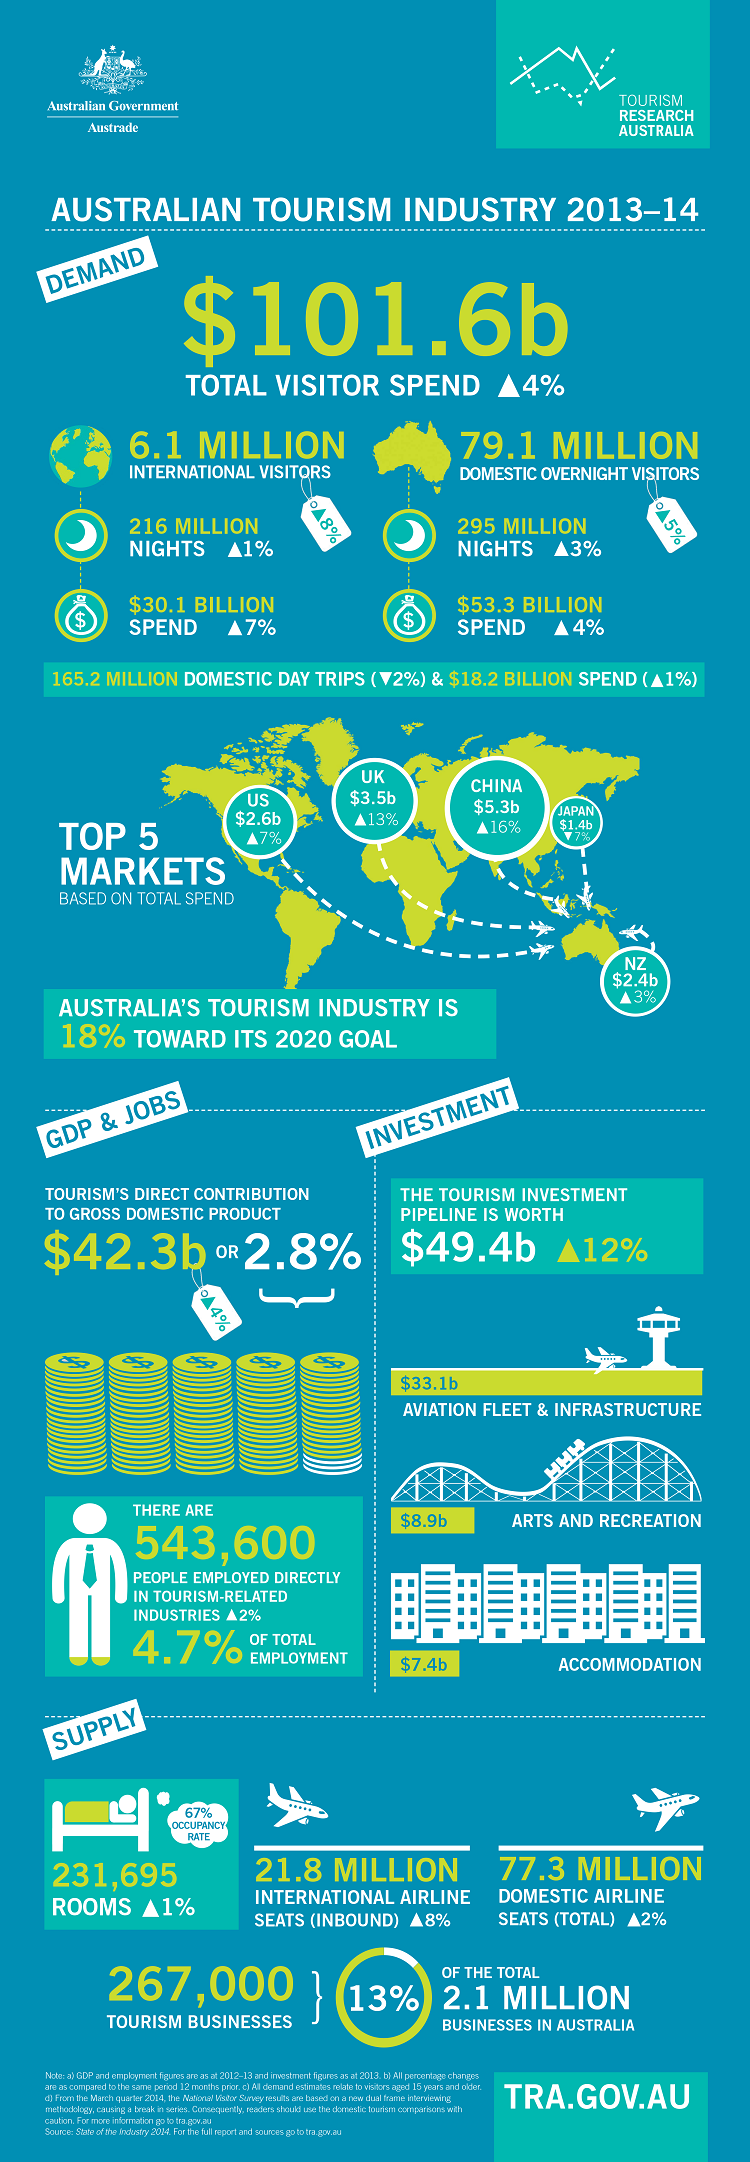 a highlight of facts about the australian industry Australian wine export value reached over 227 billion australian dollars in the financial year 2015/2016 and the export value is projected to reach around 294 billion australian dollars by 2021/2022 598247 based on export volume, australia was the fifths largest wine export nation worldwide in 2016.